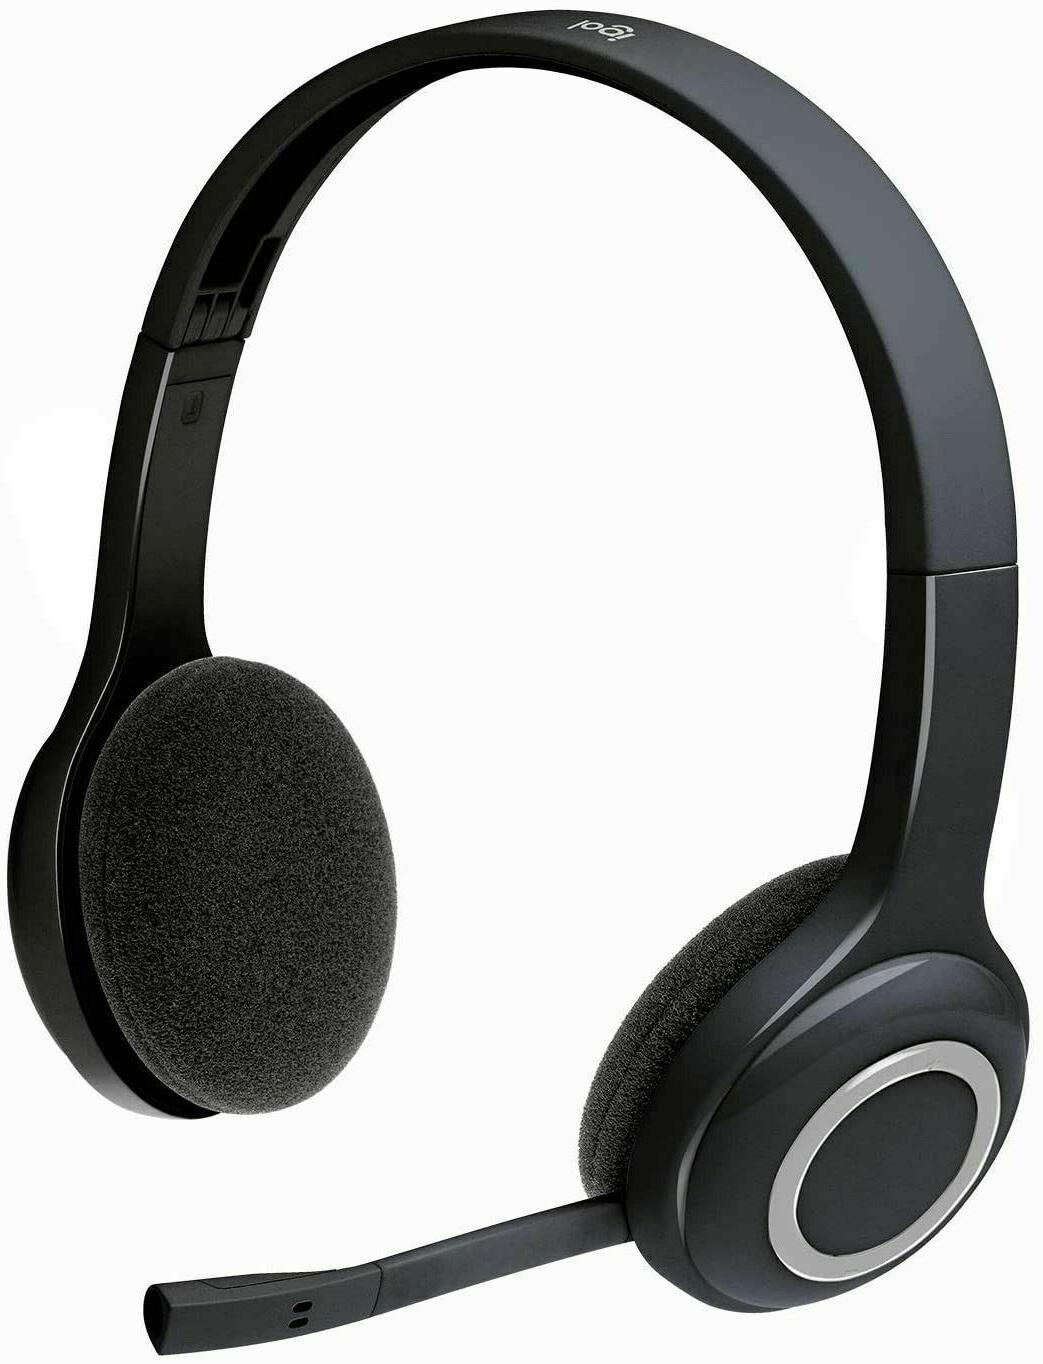 h600 wireless headset noise cancelling mic on